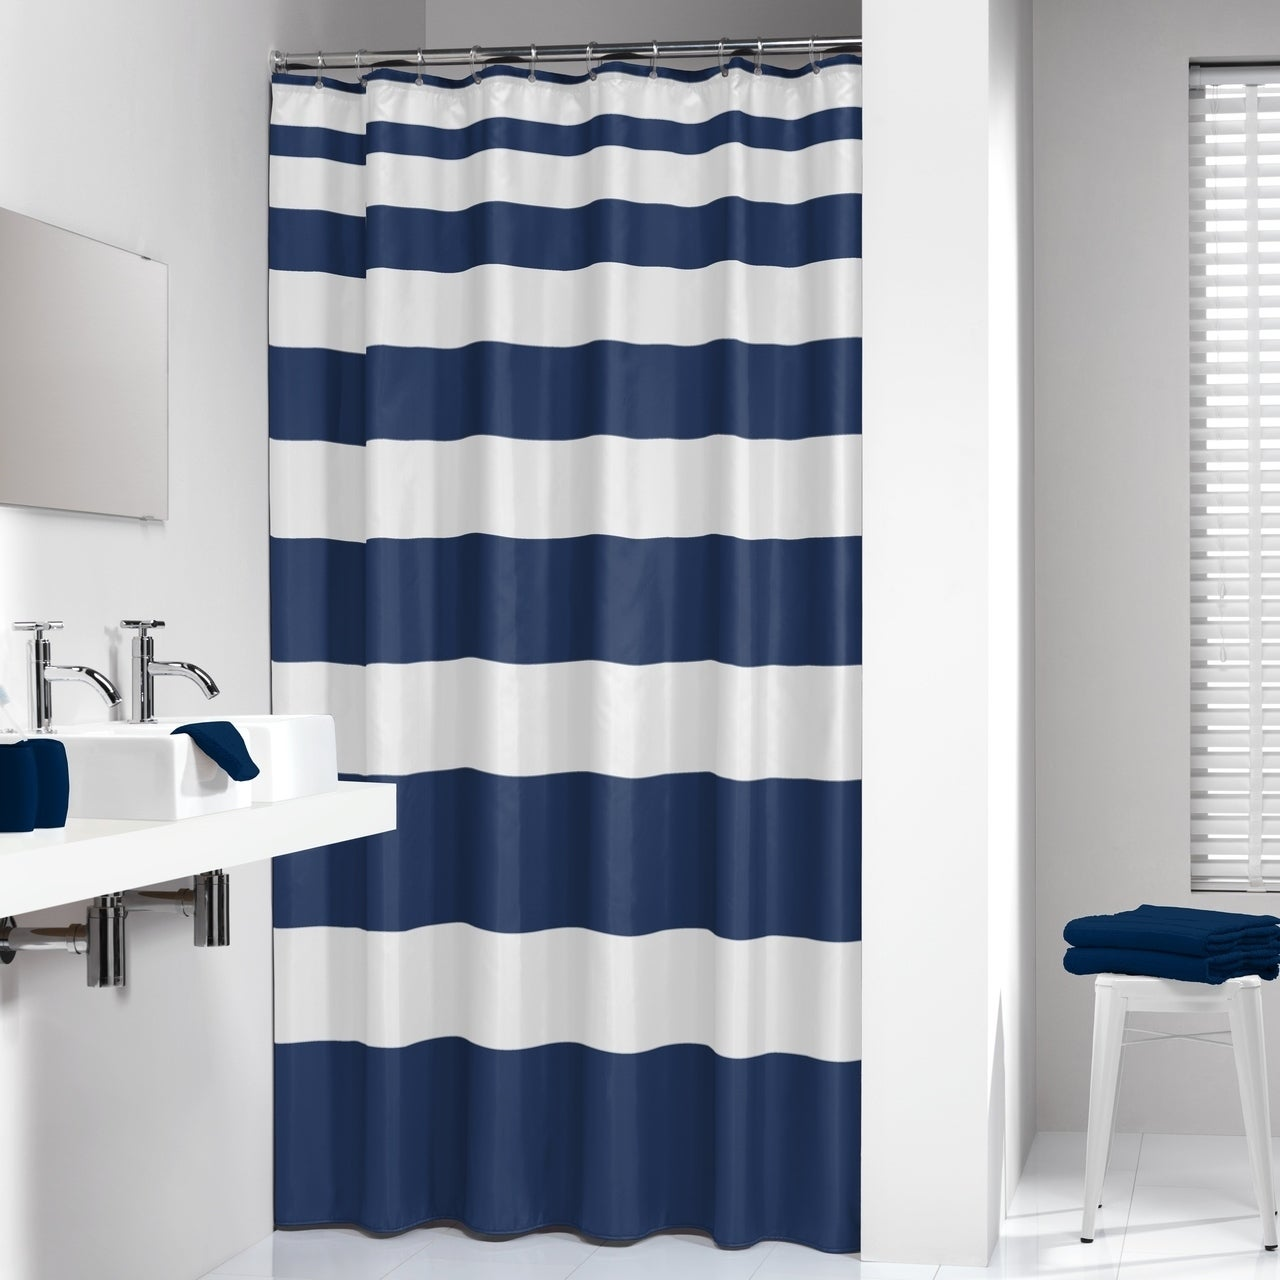 Sealskin Extra Long Shower Curtain 78 X 72 Inch Nautica Stripes Blue And White Fabric